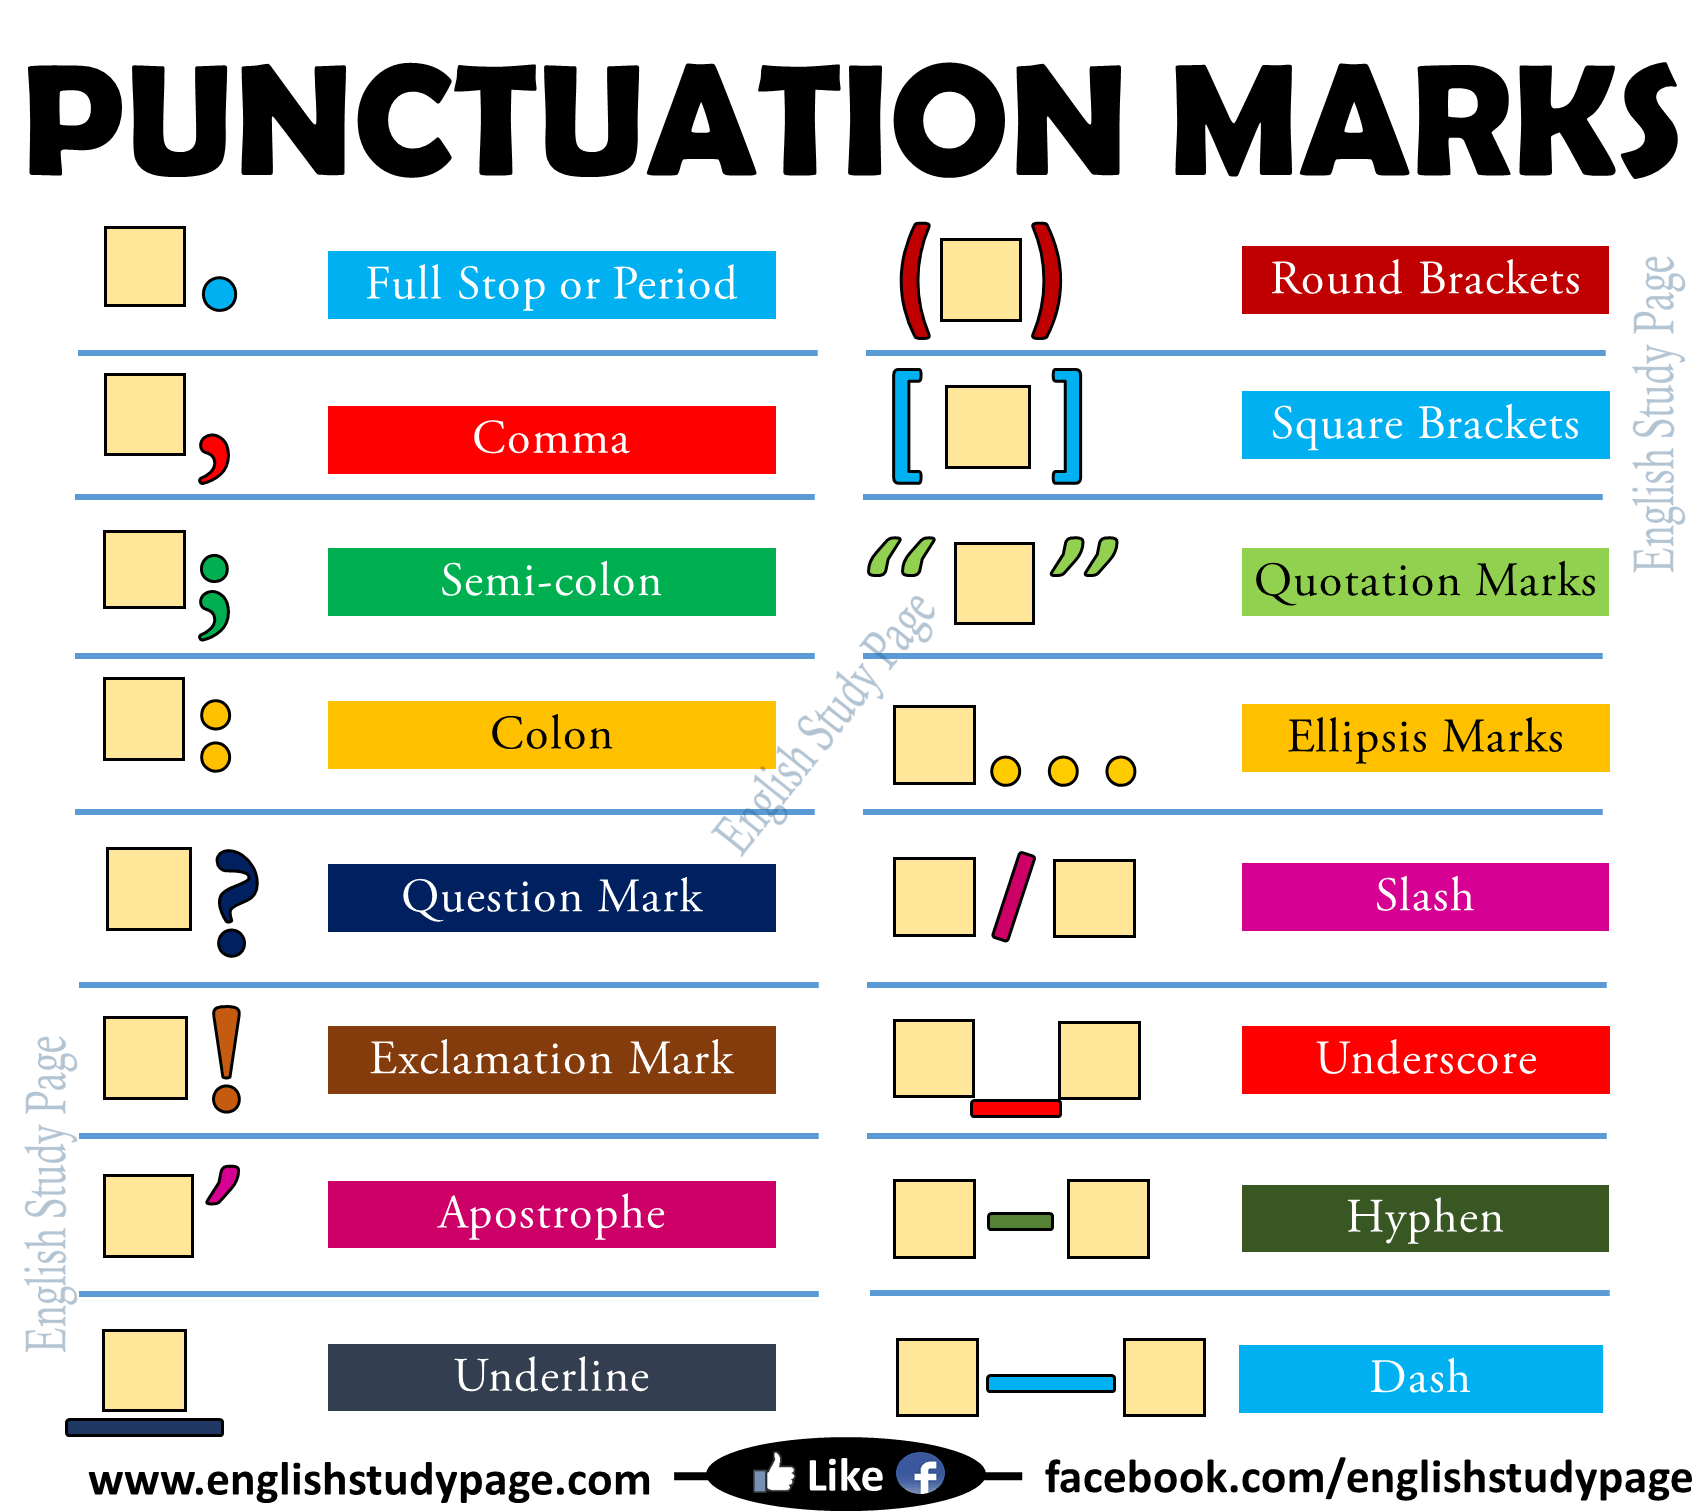 Punctuation Marks List